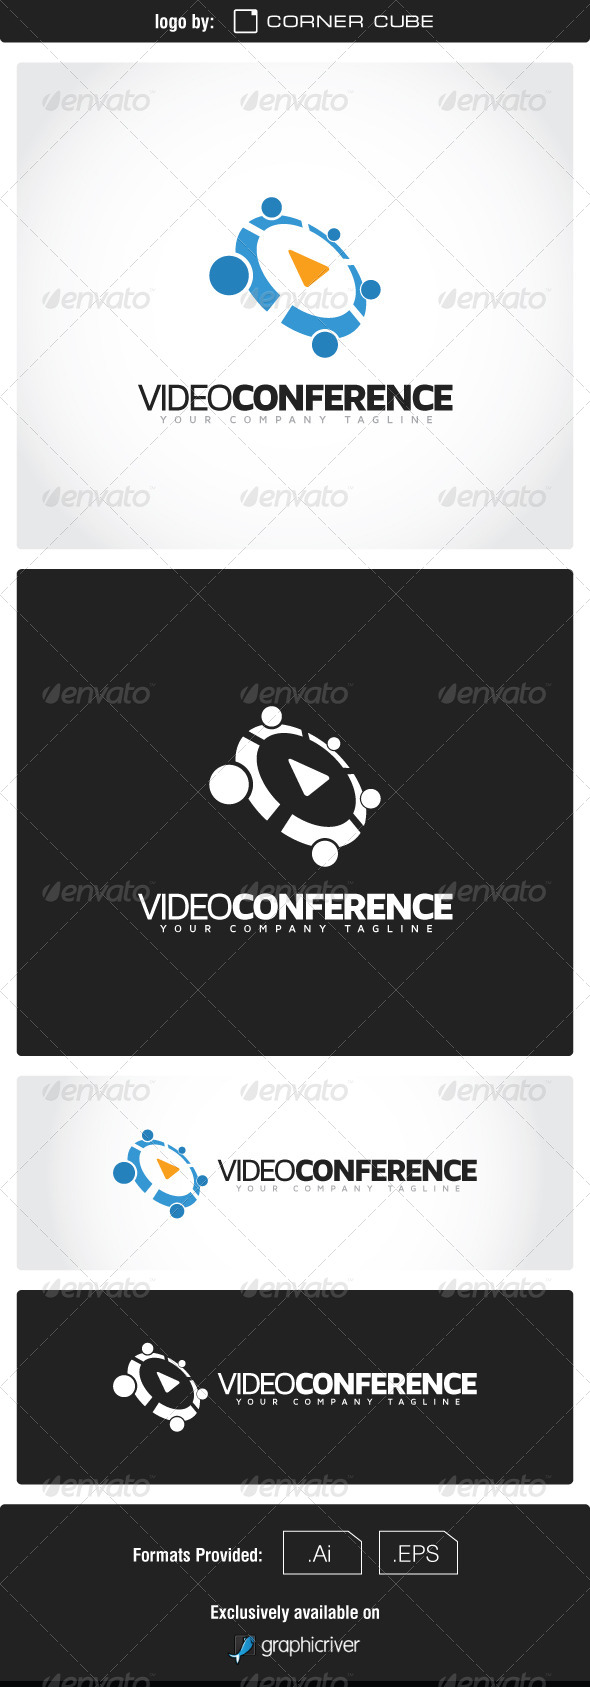 Video Conference Logo